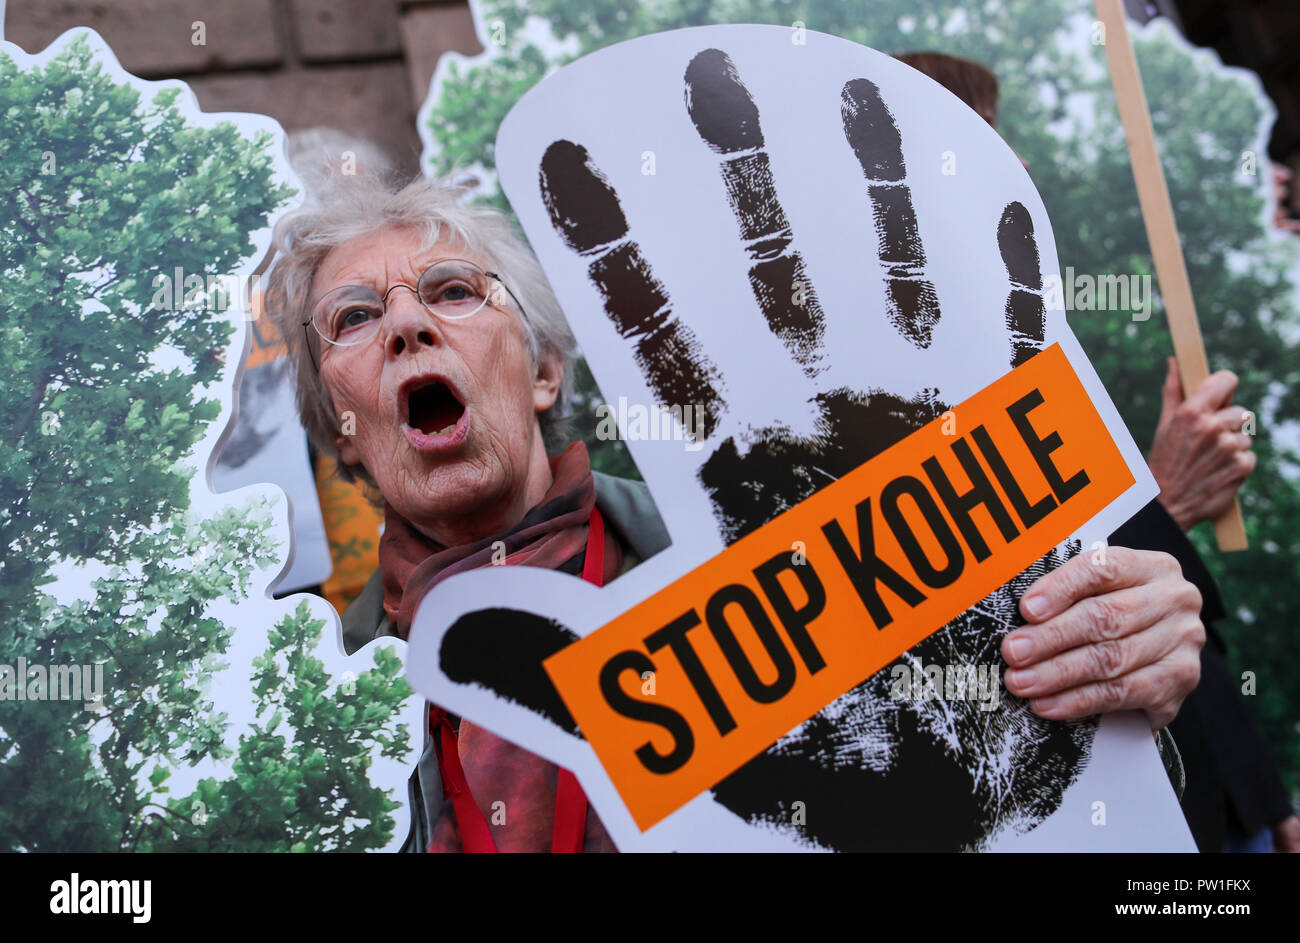 Berlin, Germany. 12 October 2018, Berlin: Environmentalists and activists of the Campact citizens' movement protesting in front of the Federal Ministry of Economics against further coal mining in Germany. The coal commission, which is to negotiate a timetable and a date for phasing out coal production by the end of the year, meets at the ministry. Photo: Jens Büttner/dpa-Zentralbild/dpa Credit: dpa picture alliance/Alamy Live News Stock Photo